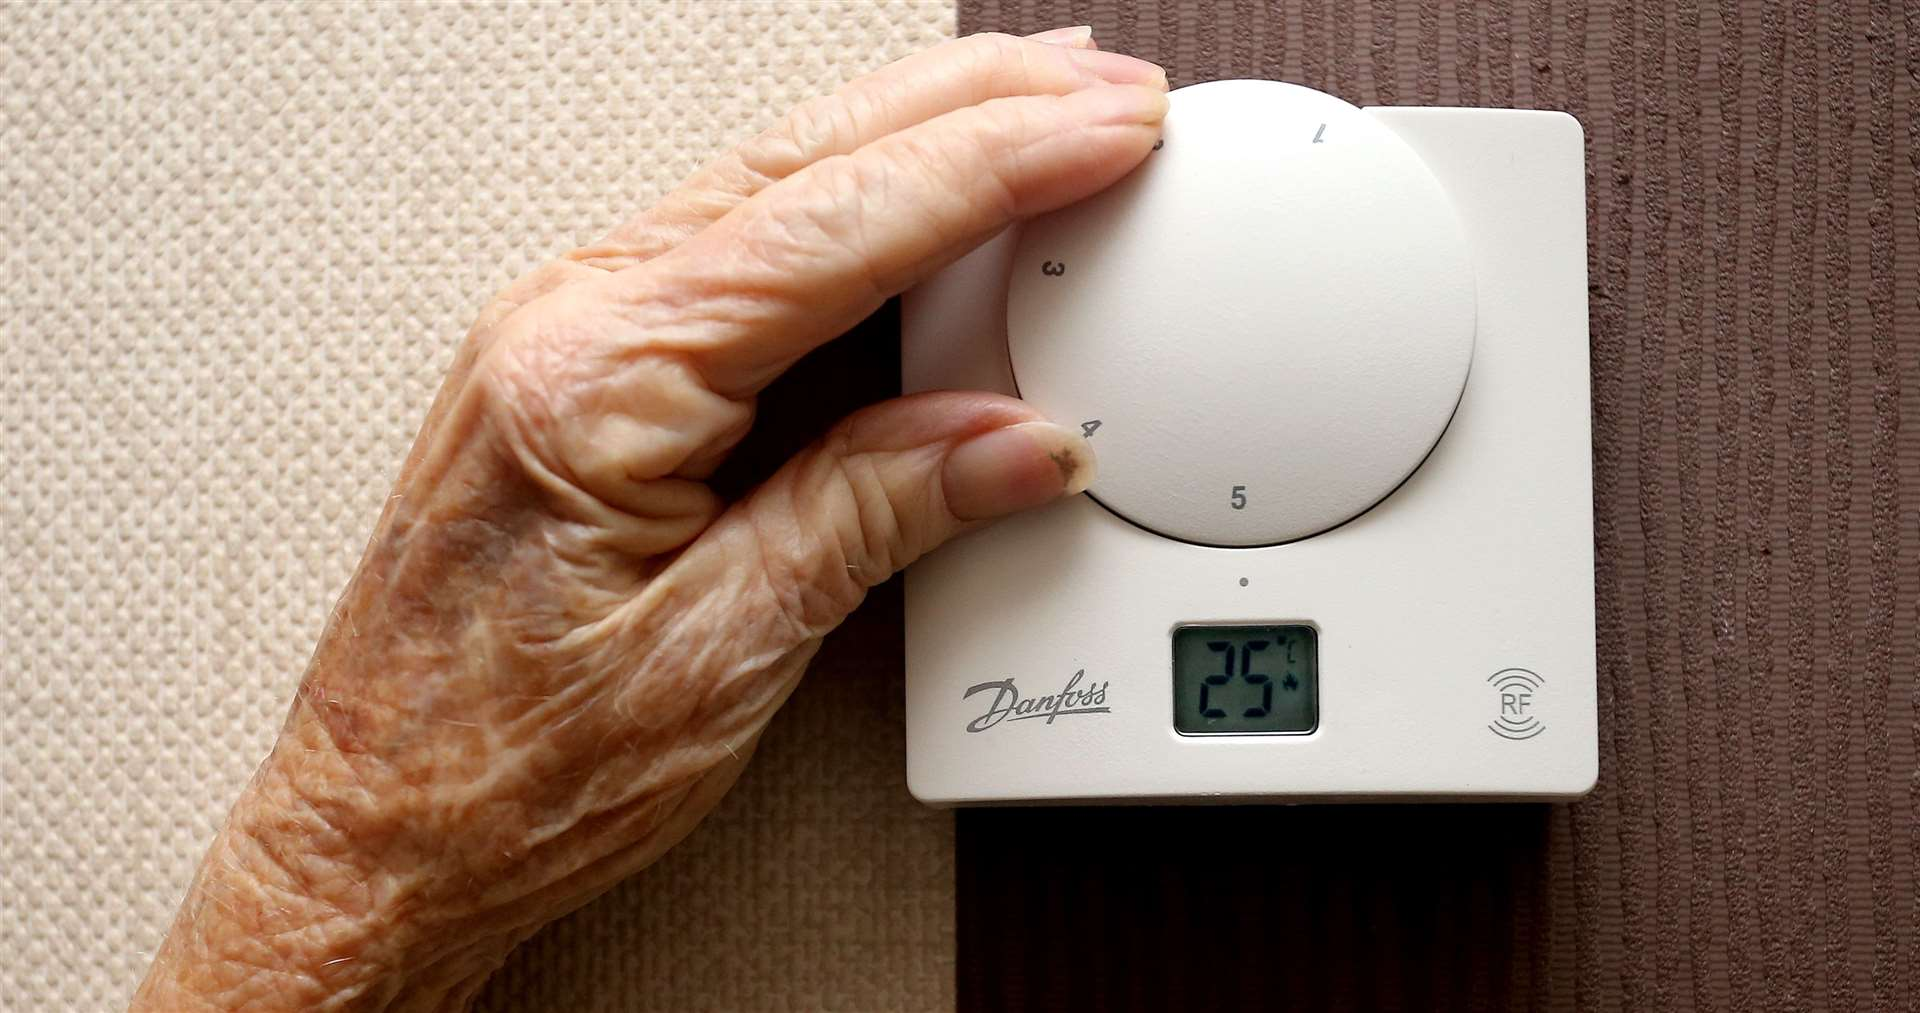 Heating costs are expected to leave lots of families struggling to pay their bills this winter